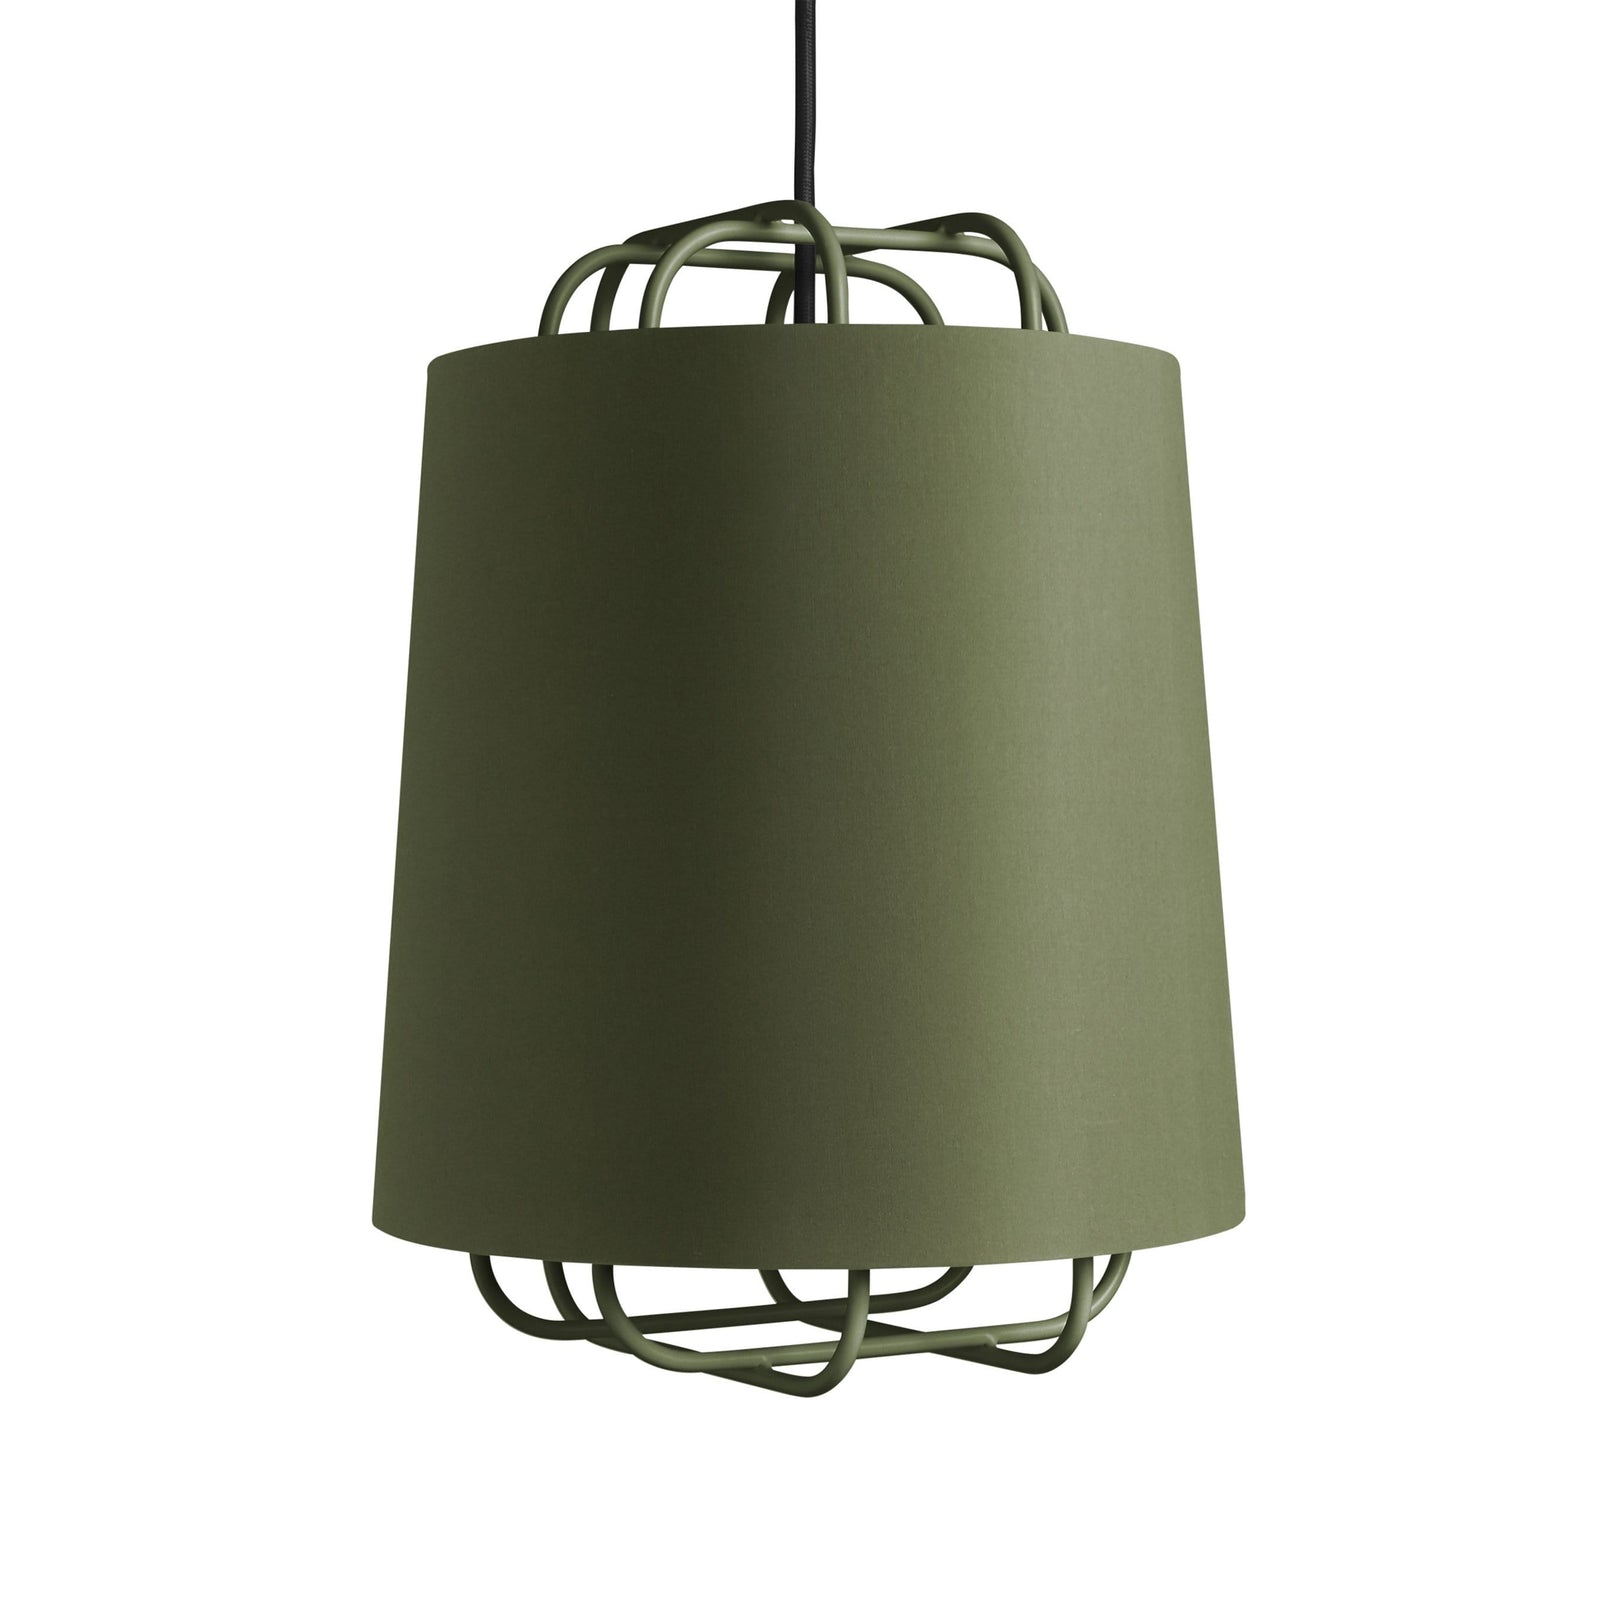 Blu Dot Lighting Olive Perimeter Small Pendant Light